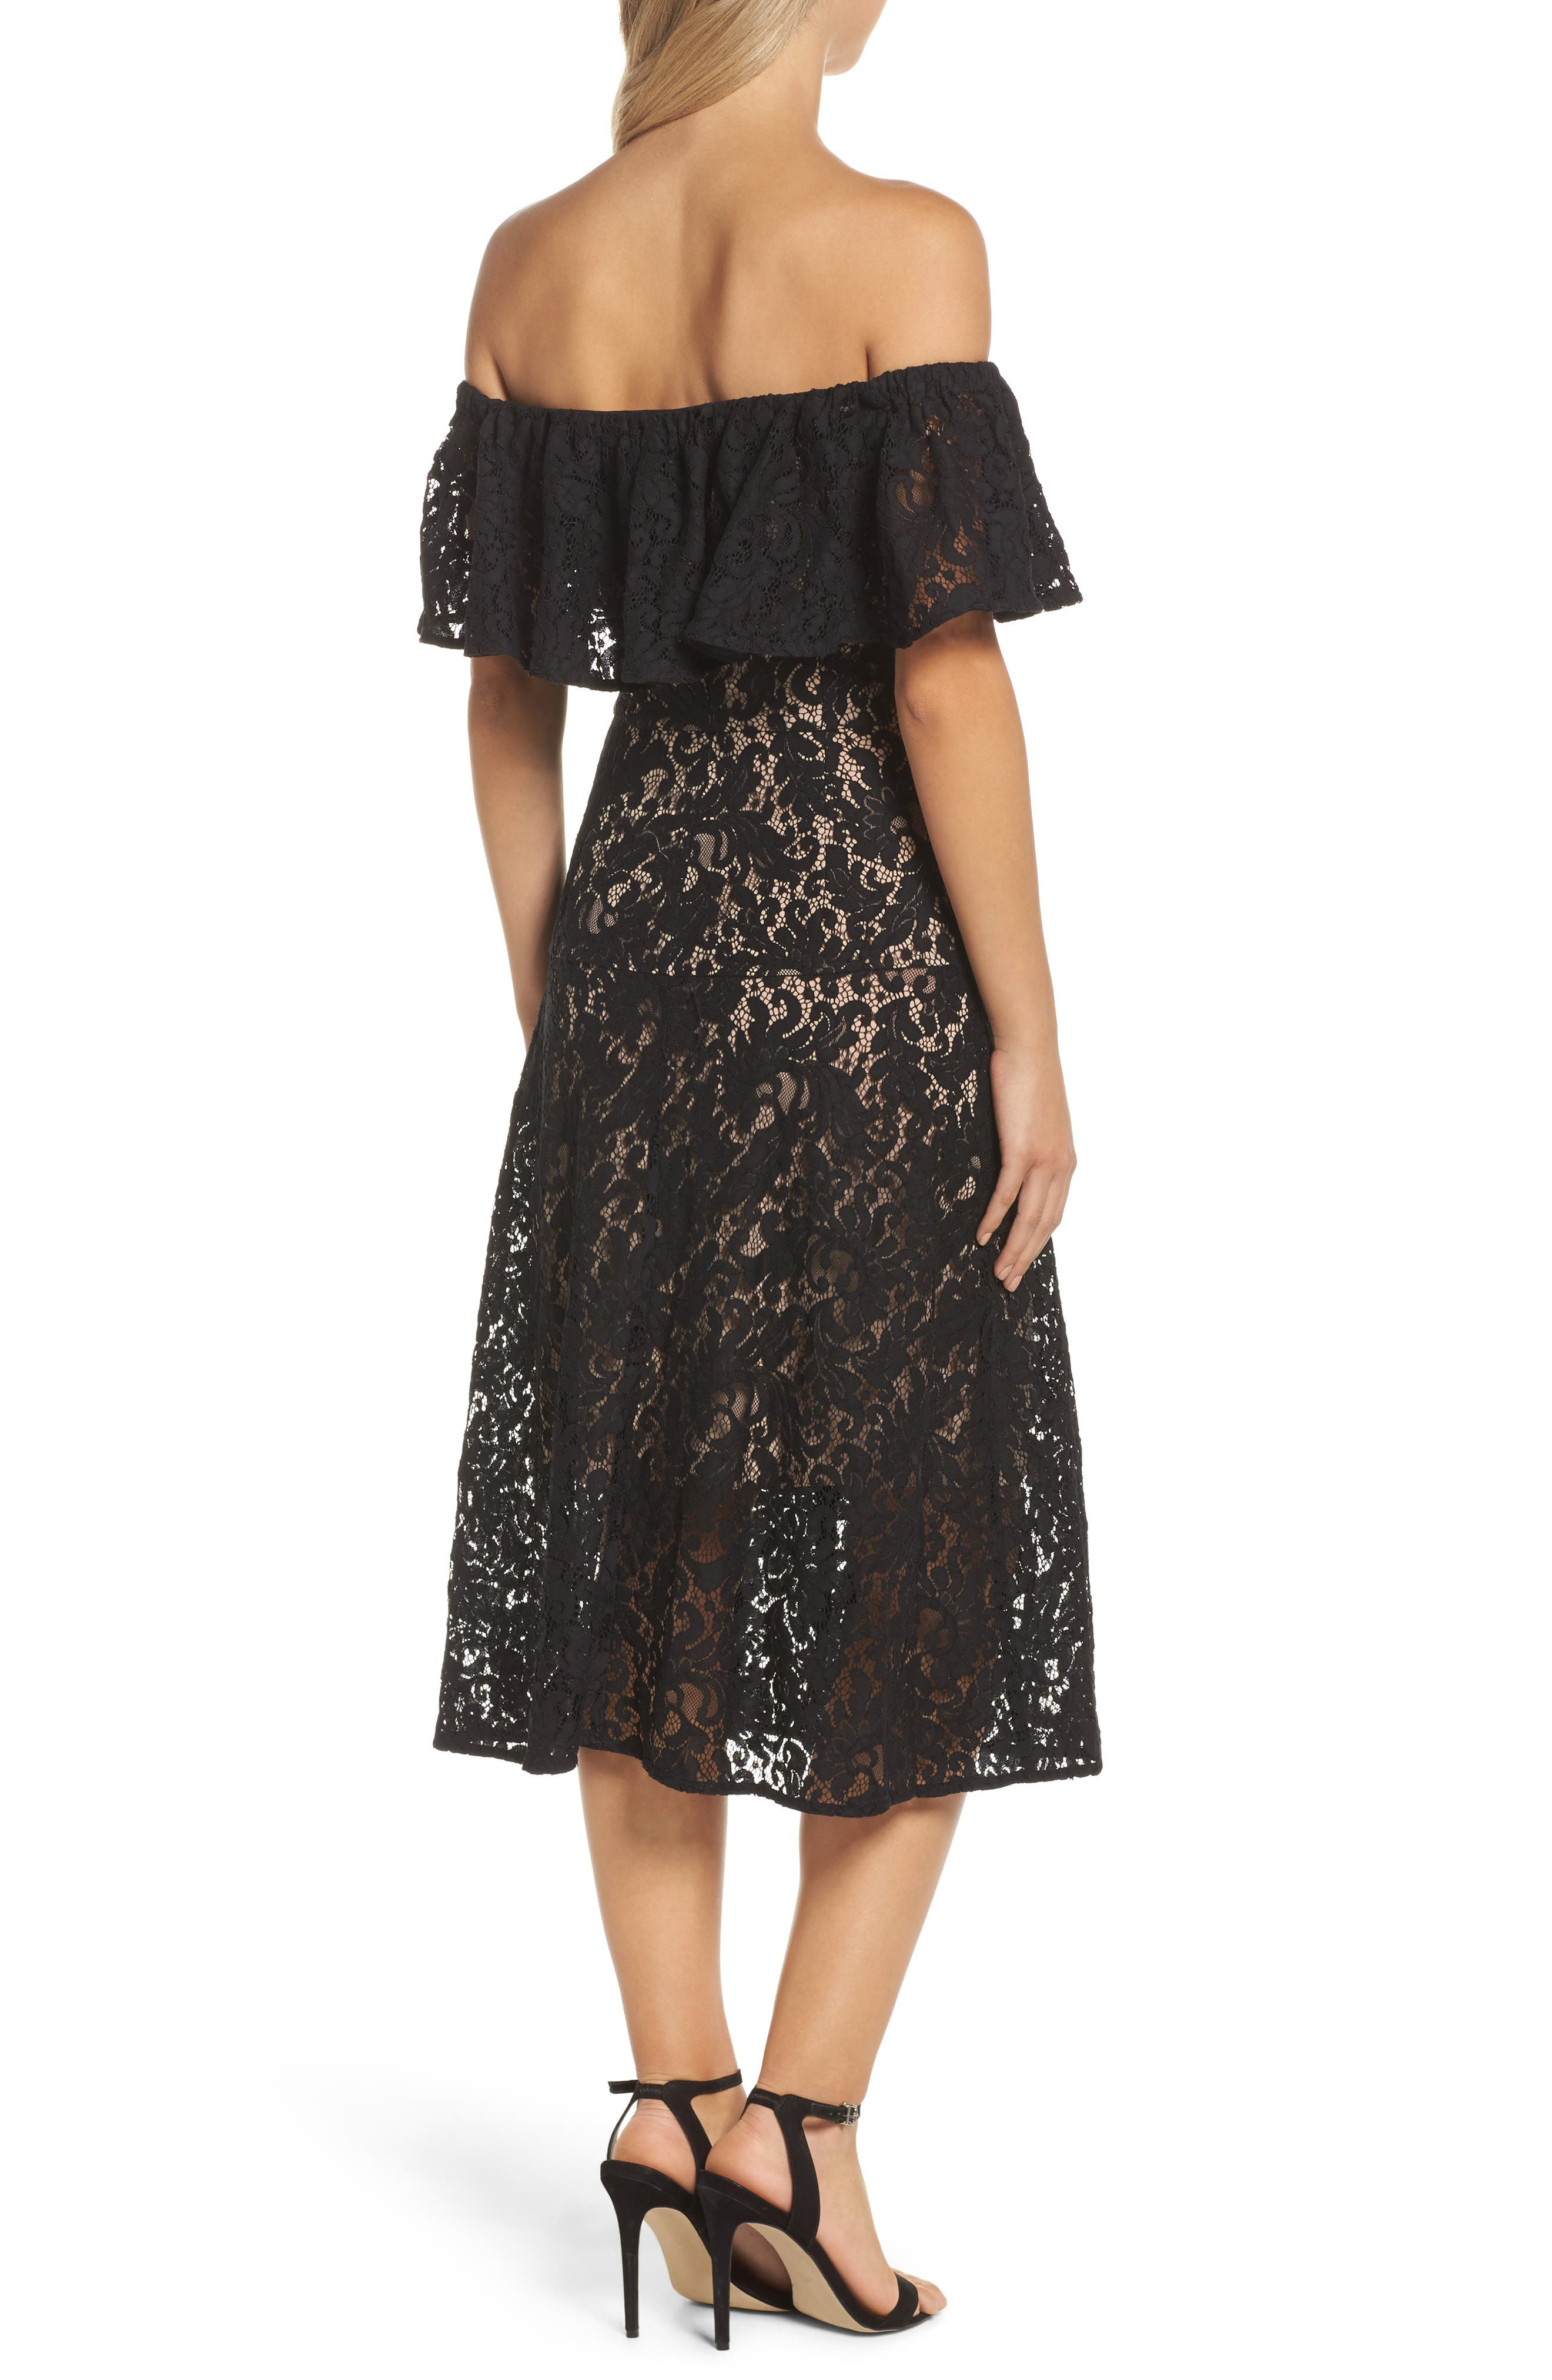 Sunday Silence Lace Off the Shoulder Dress,                             Alternate thumbnail 2, color,                             001